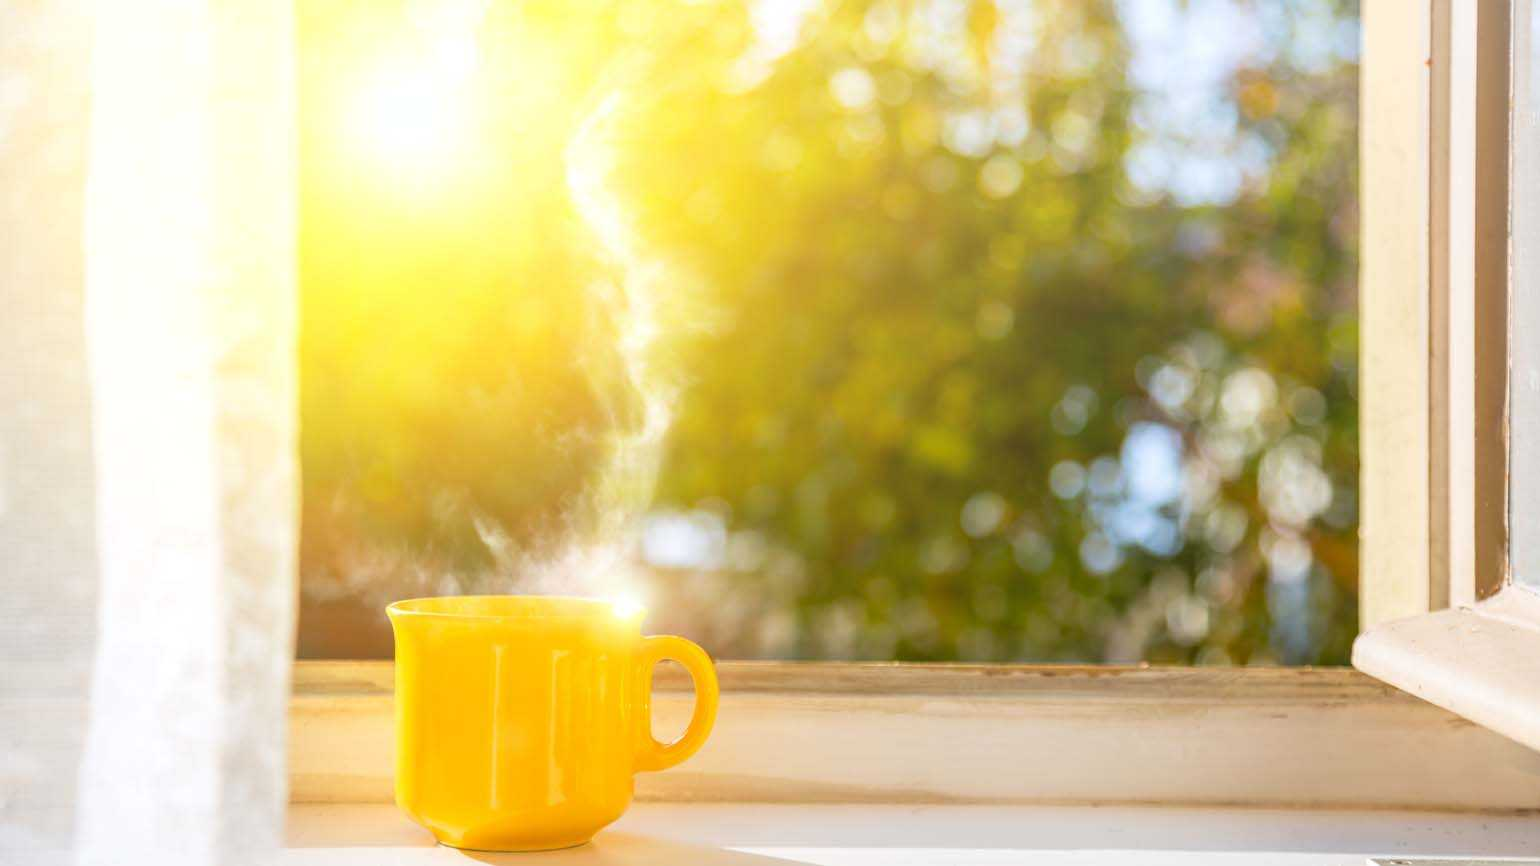 Cup on window with morning sun; Getty Images